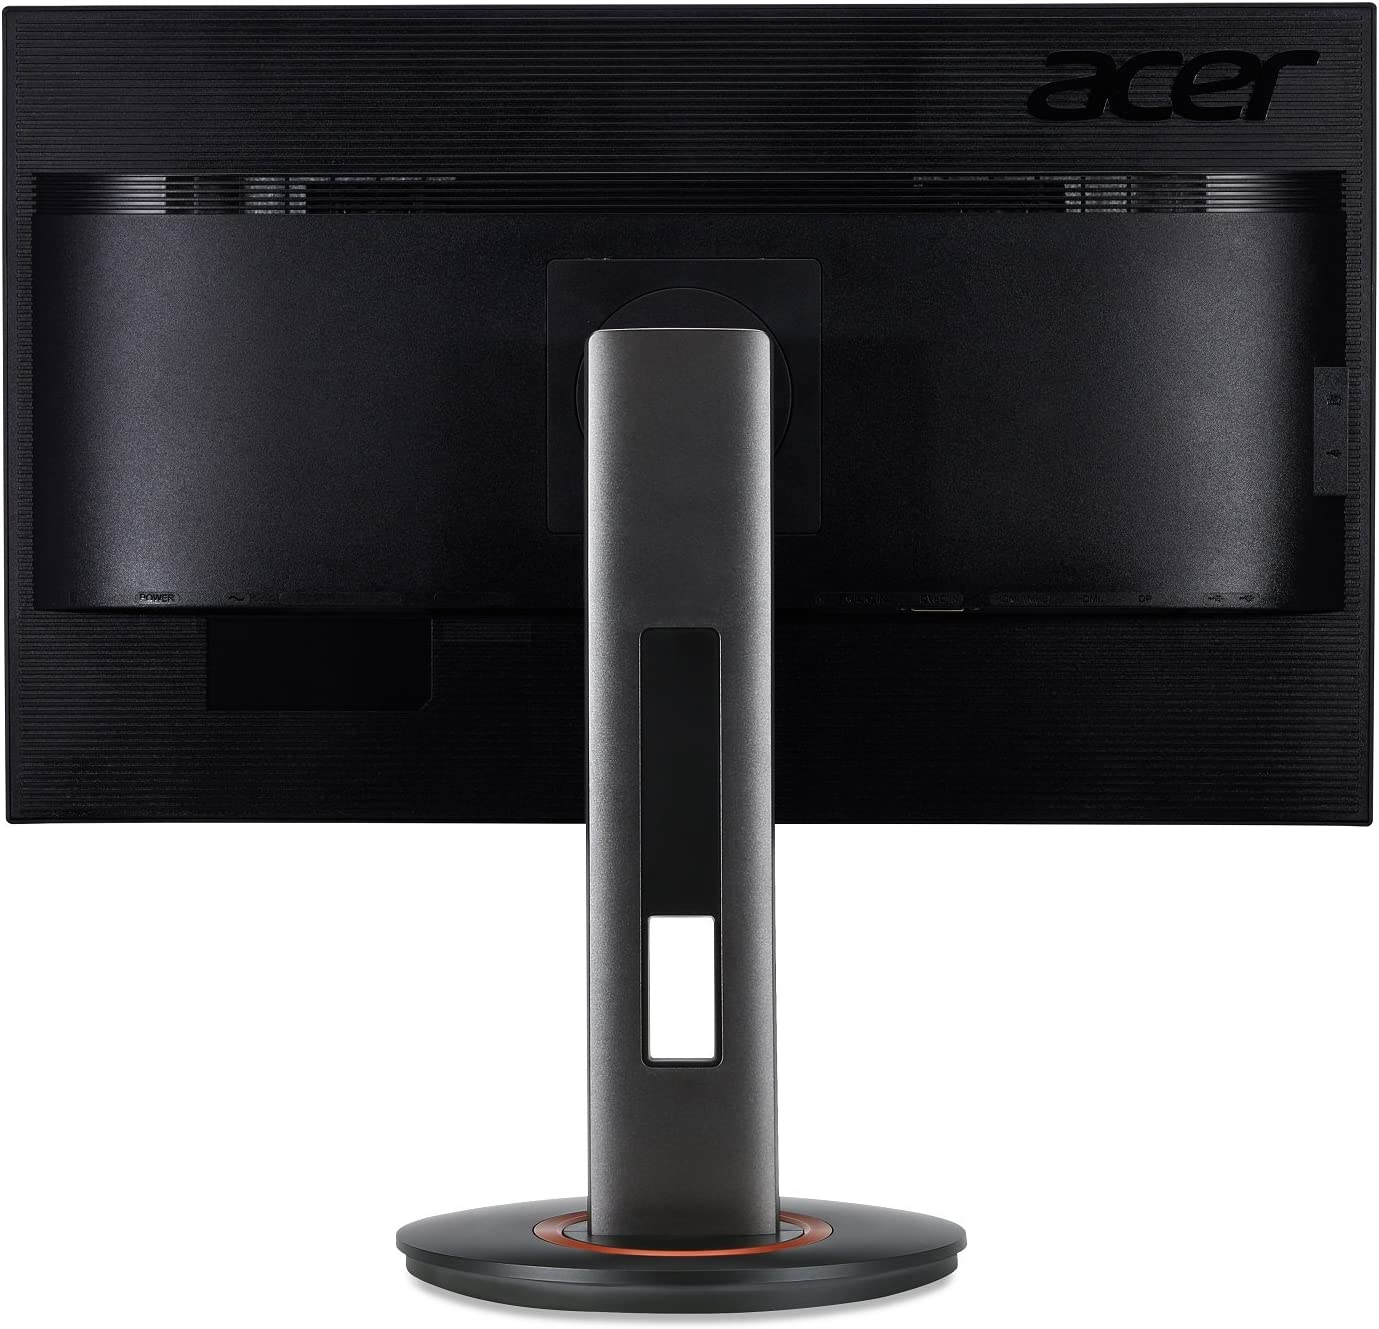 Acer XF0 XF270HU CBMIIPRX 27-Inch Screen Led-Lit 14700510